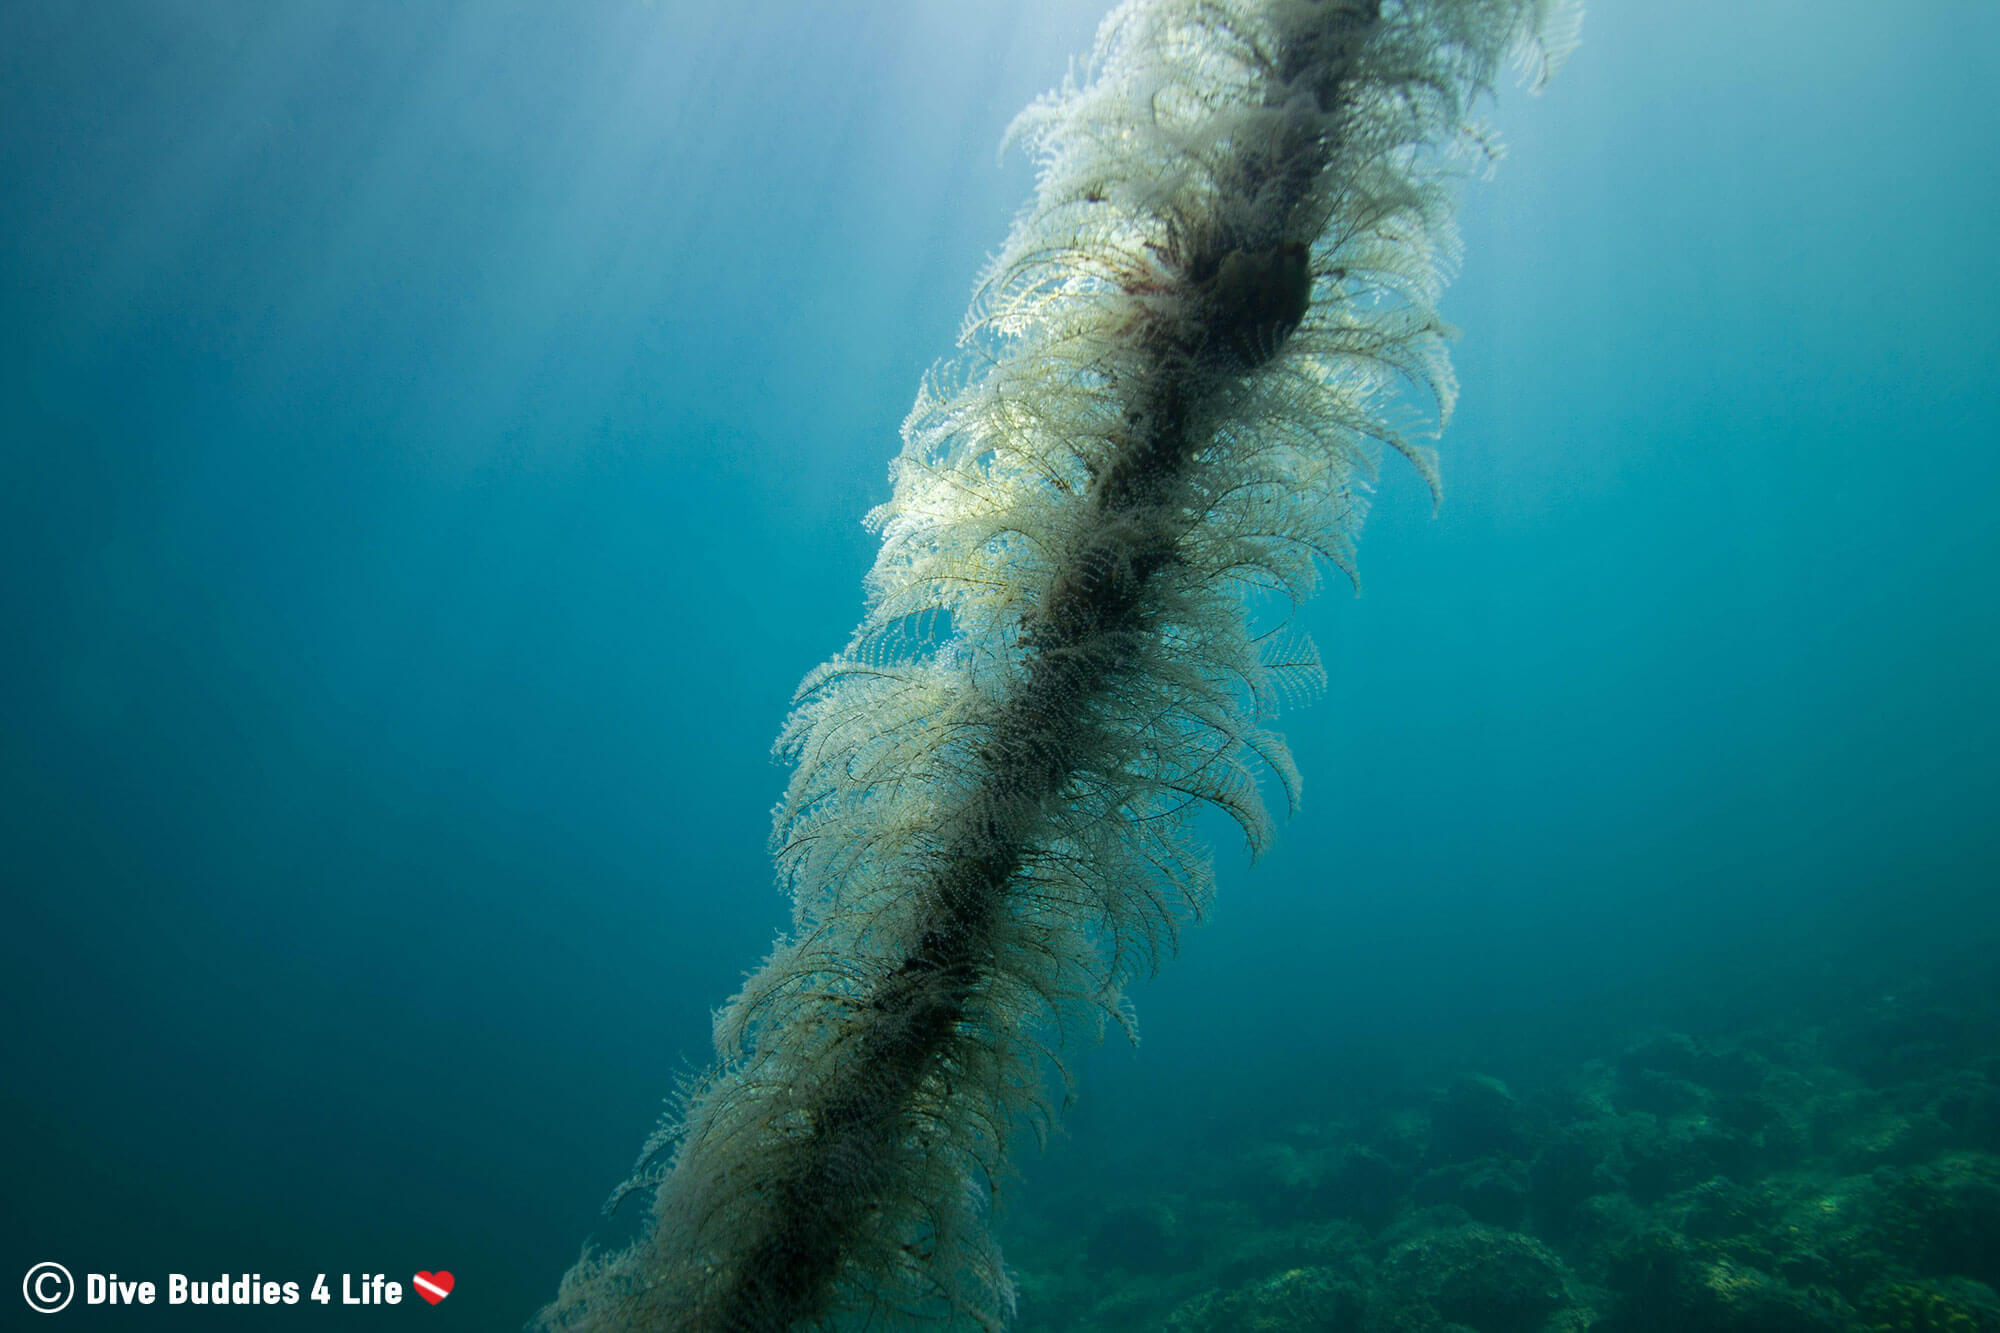 Rope With Marine Plant Growth In Slovenia